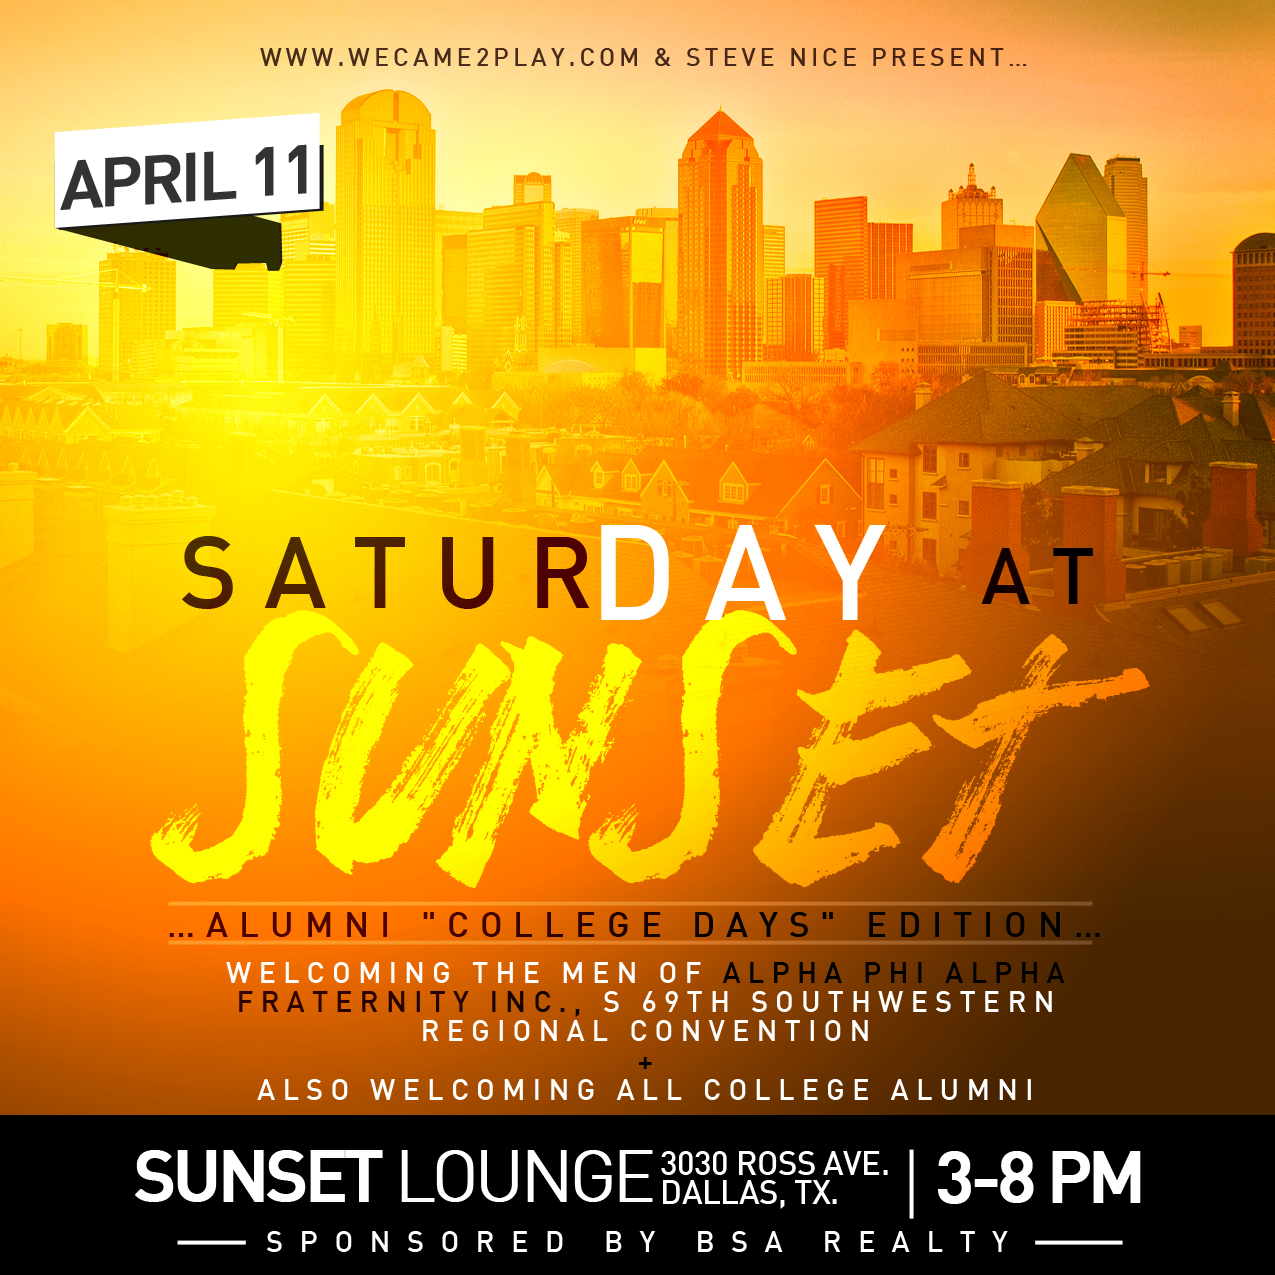 SaturDAY at Sunset [College Days] @ Sunset Lounge 4.11.15